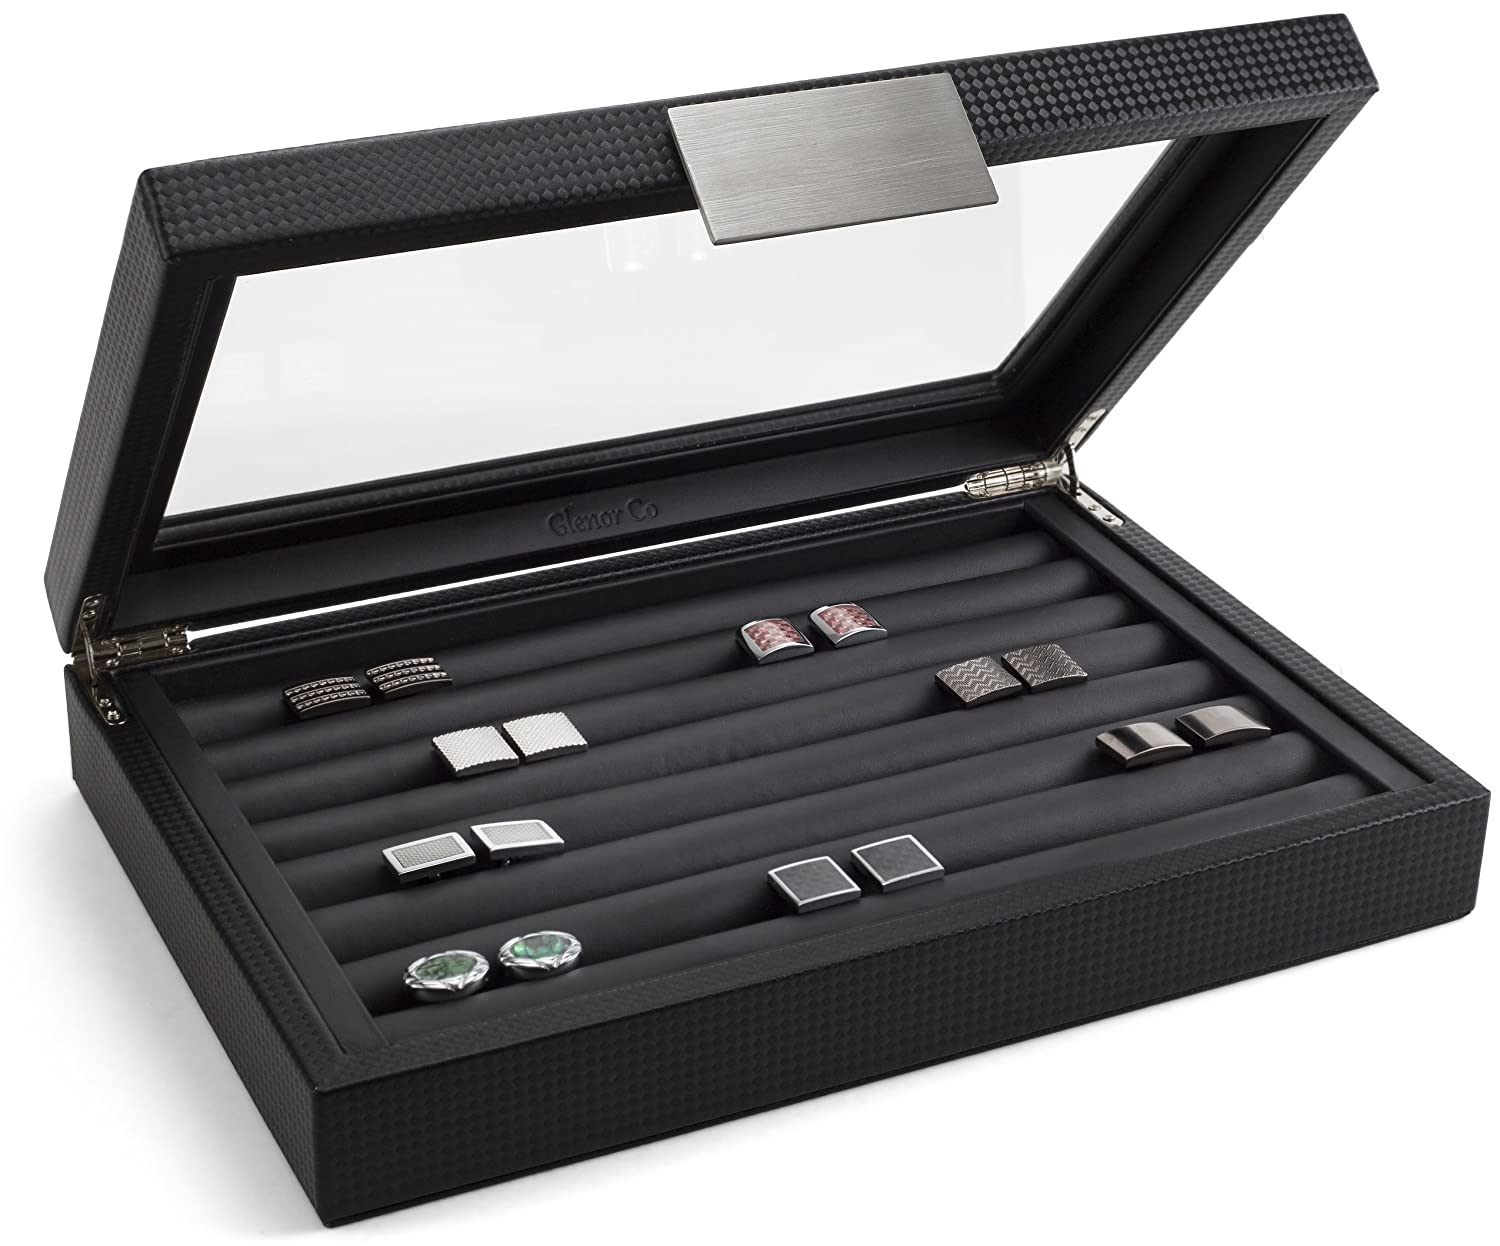 Glenor Co Cufflink Box for Men - Holds 70 Cufflinks - Luxury Display Jewelry Case -Carbon Fiber Design - Metal Buckle Holder, Large Glass Top - Black